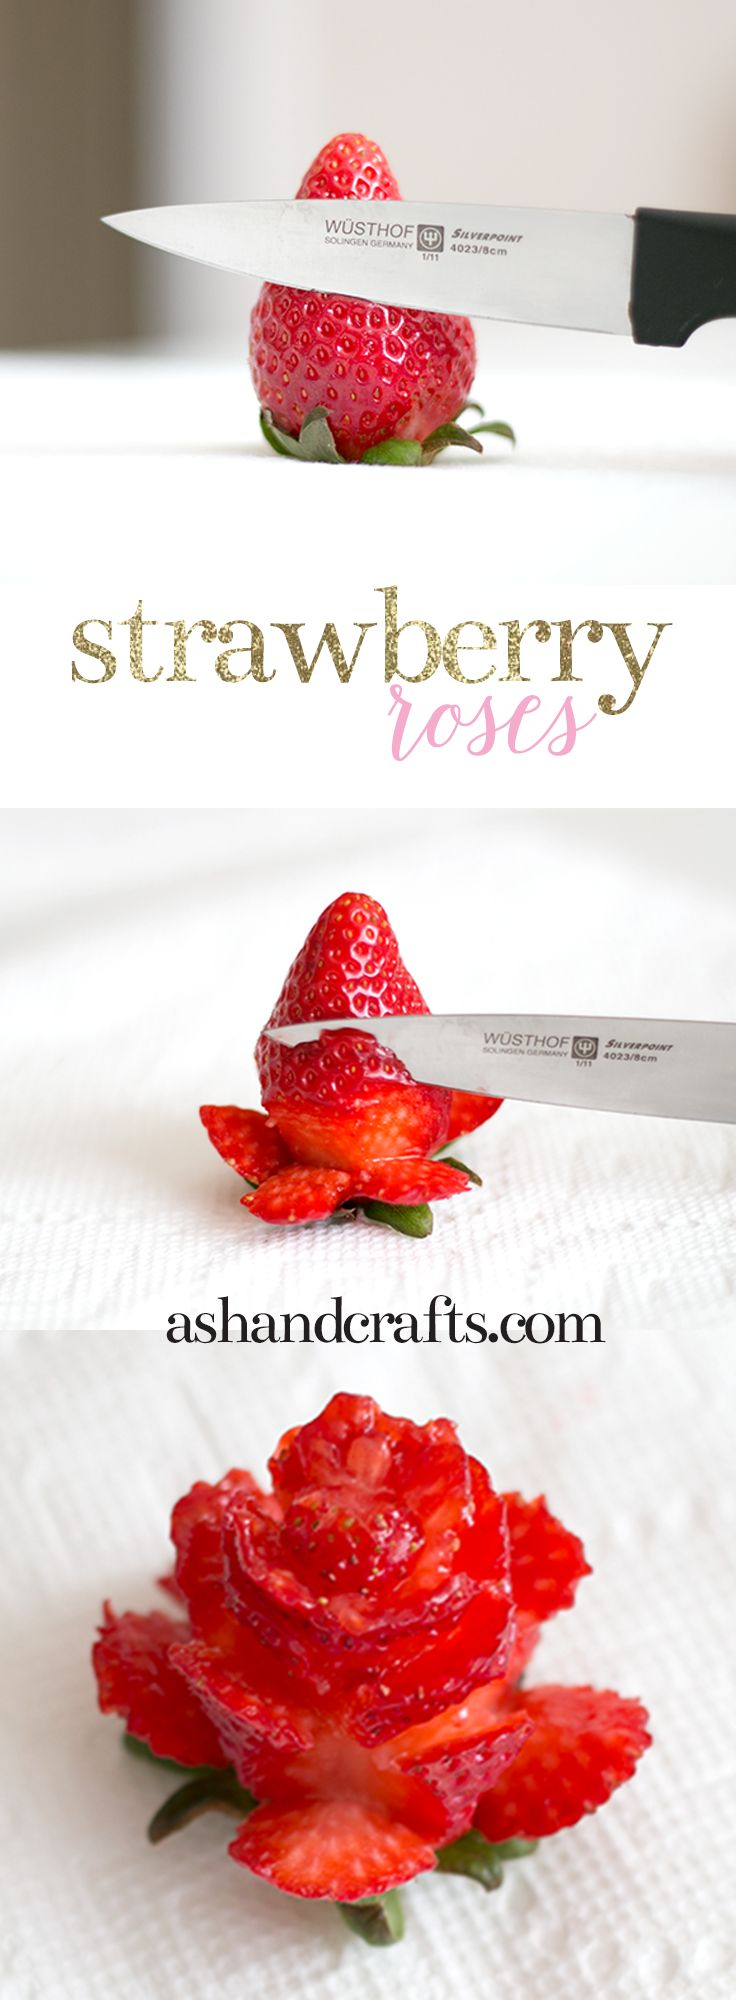 Learn how to cut strawberries into roses. See this tutorial and more and ashandcrafts.com°°